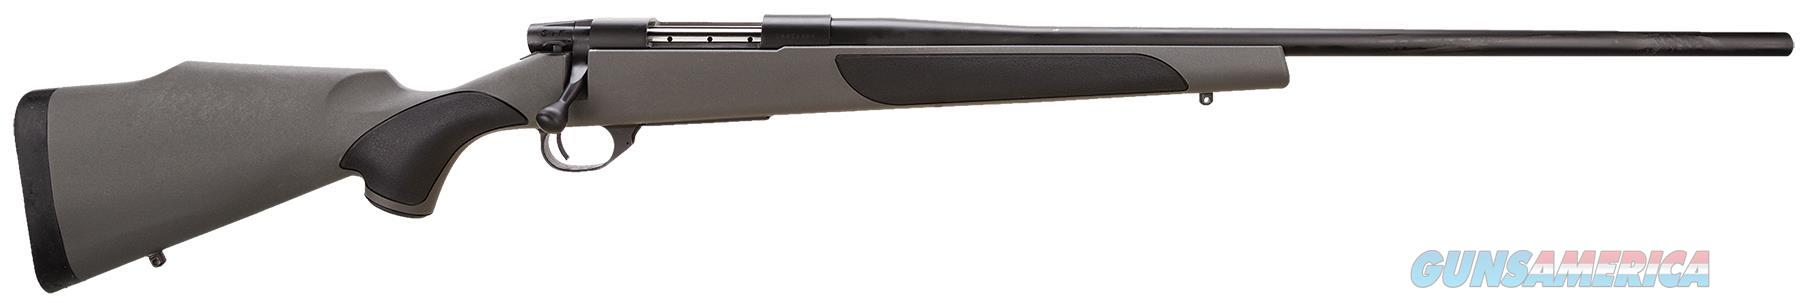 WEATHERBY VANGUARD S2 300WBY VGT300WR4O  Guns > Rifles > Weatherby Rifles